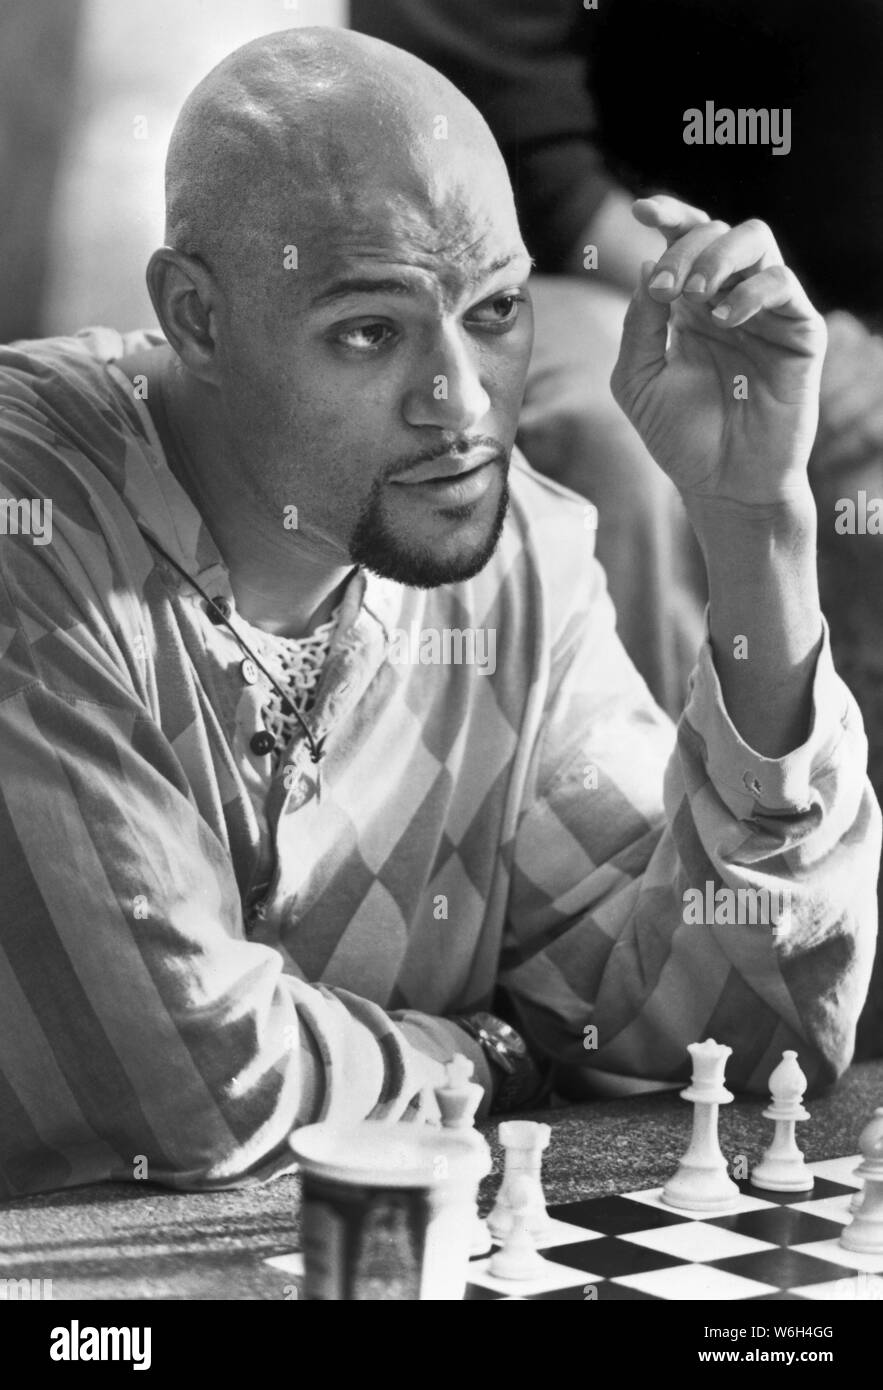 "Laurence Fishburne, on-set of the Film, ""Searching for Bobby Fischer"", Photo by Kerry Hayes for Paramount Pictures, 1993 Stock Photo"